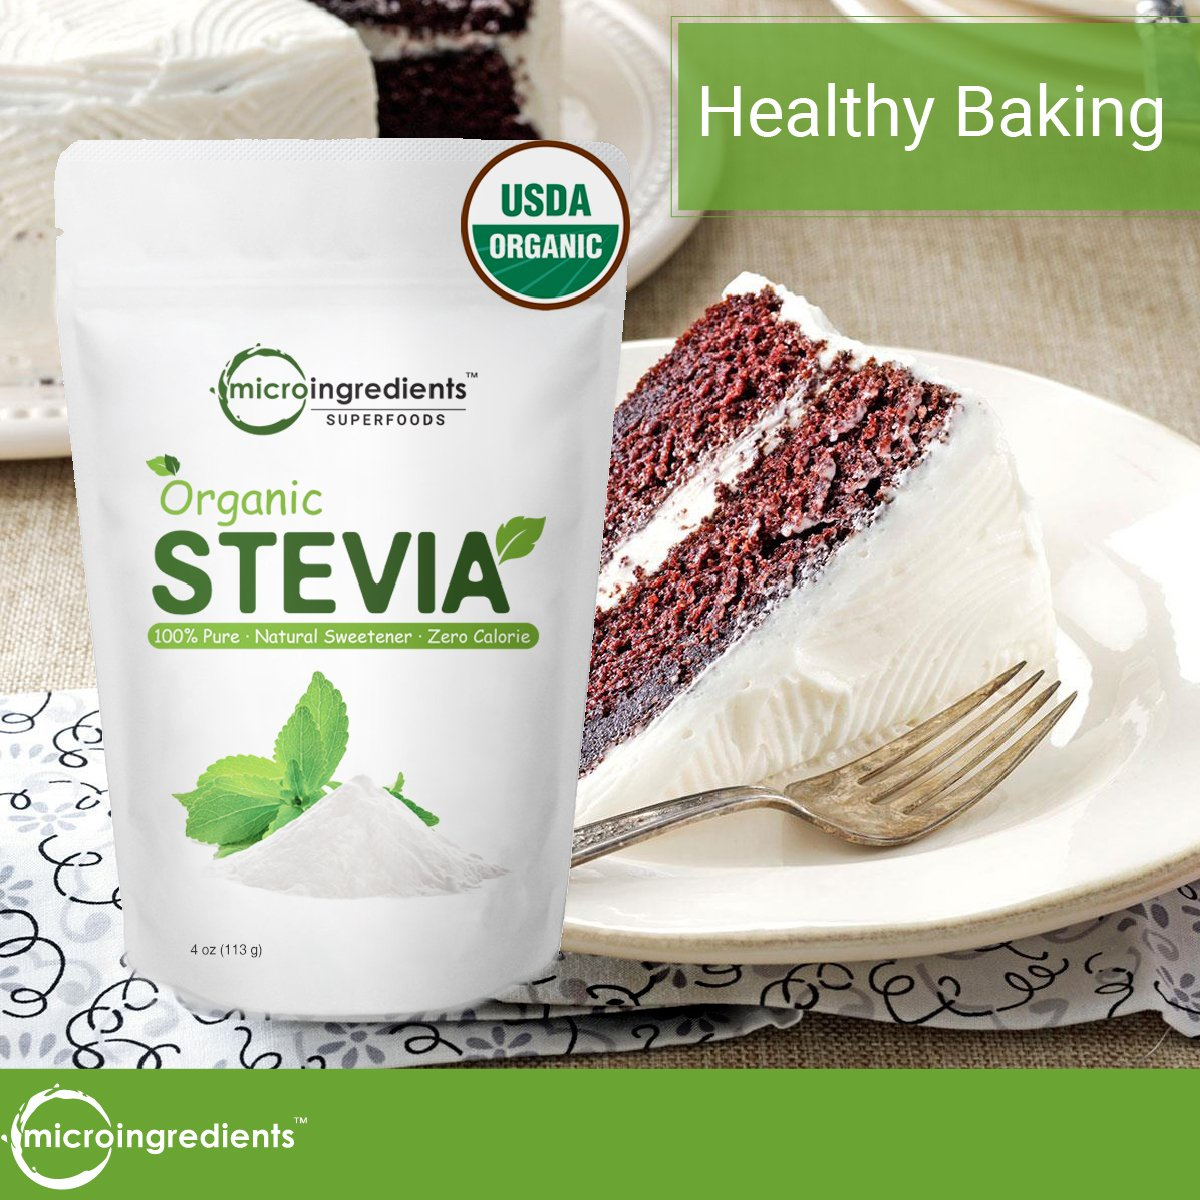 Pure Organic Stevia Powder, 8 Ounce, 1418 Serving, 0 Calorie, Natural Sweetener and Sugar Alternative, No GMOs and Vegan Friendly by Micro Ingredients (Image #3)